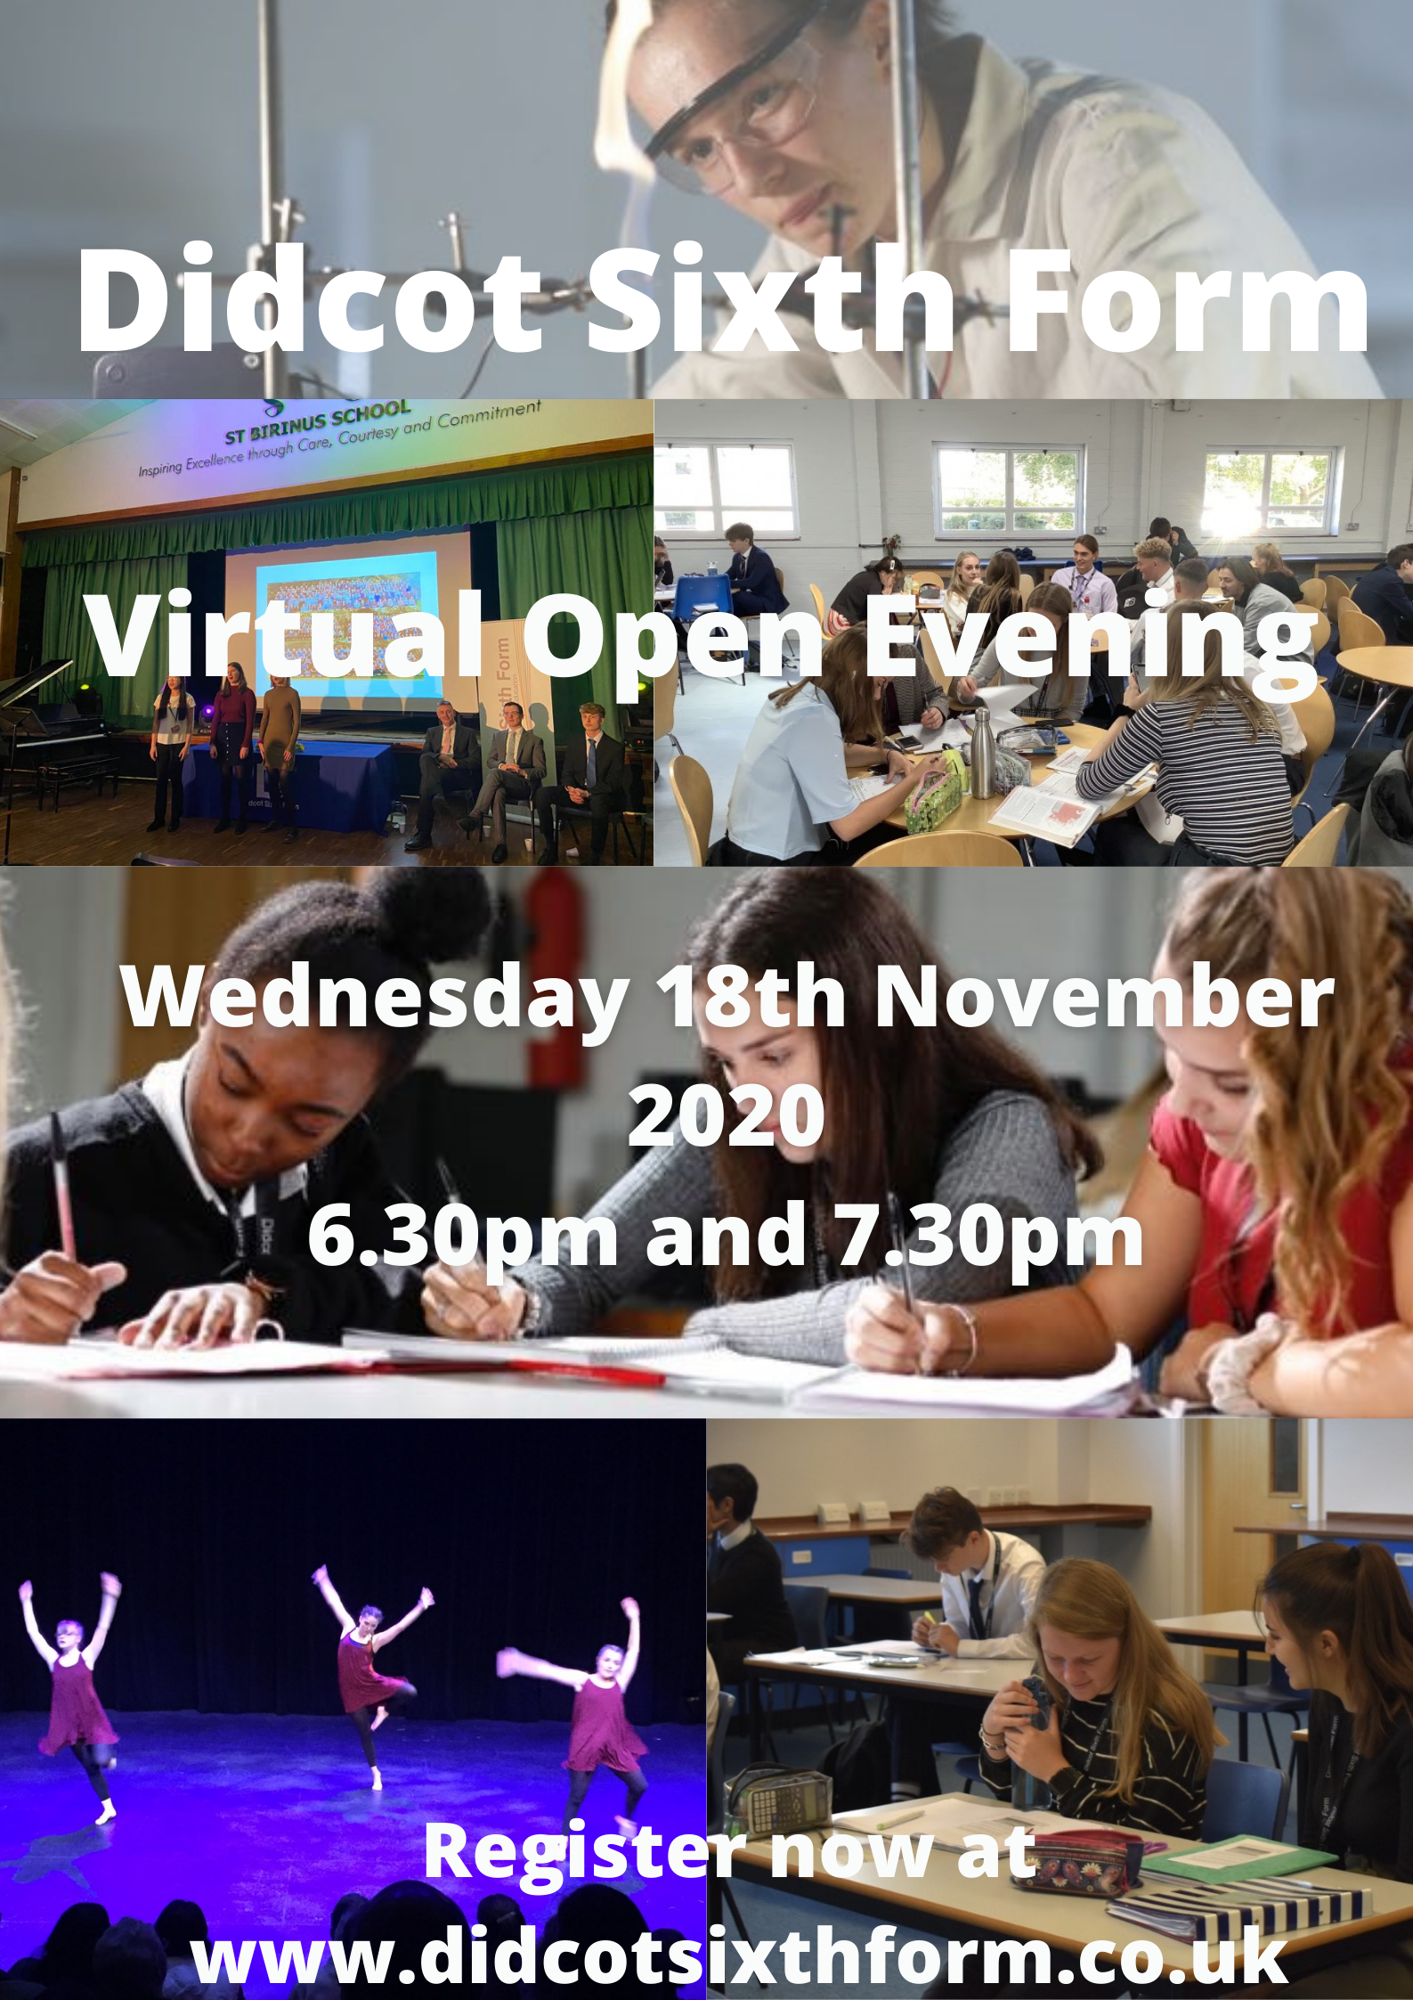 Didcot sixth form virtual open evening wednesday